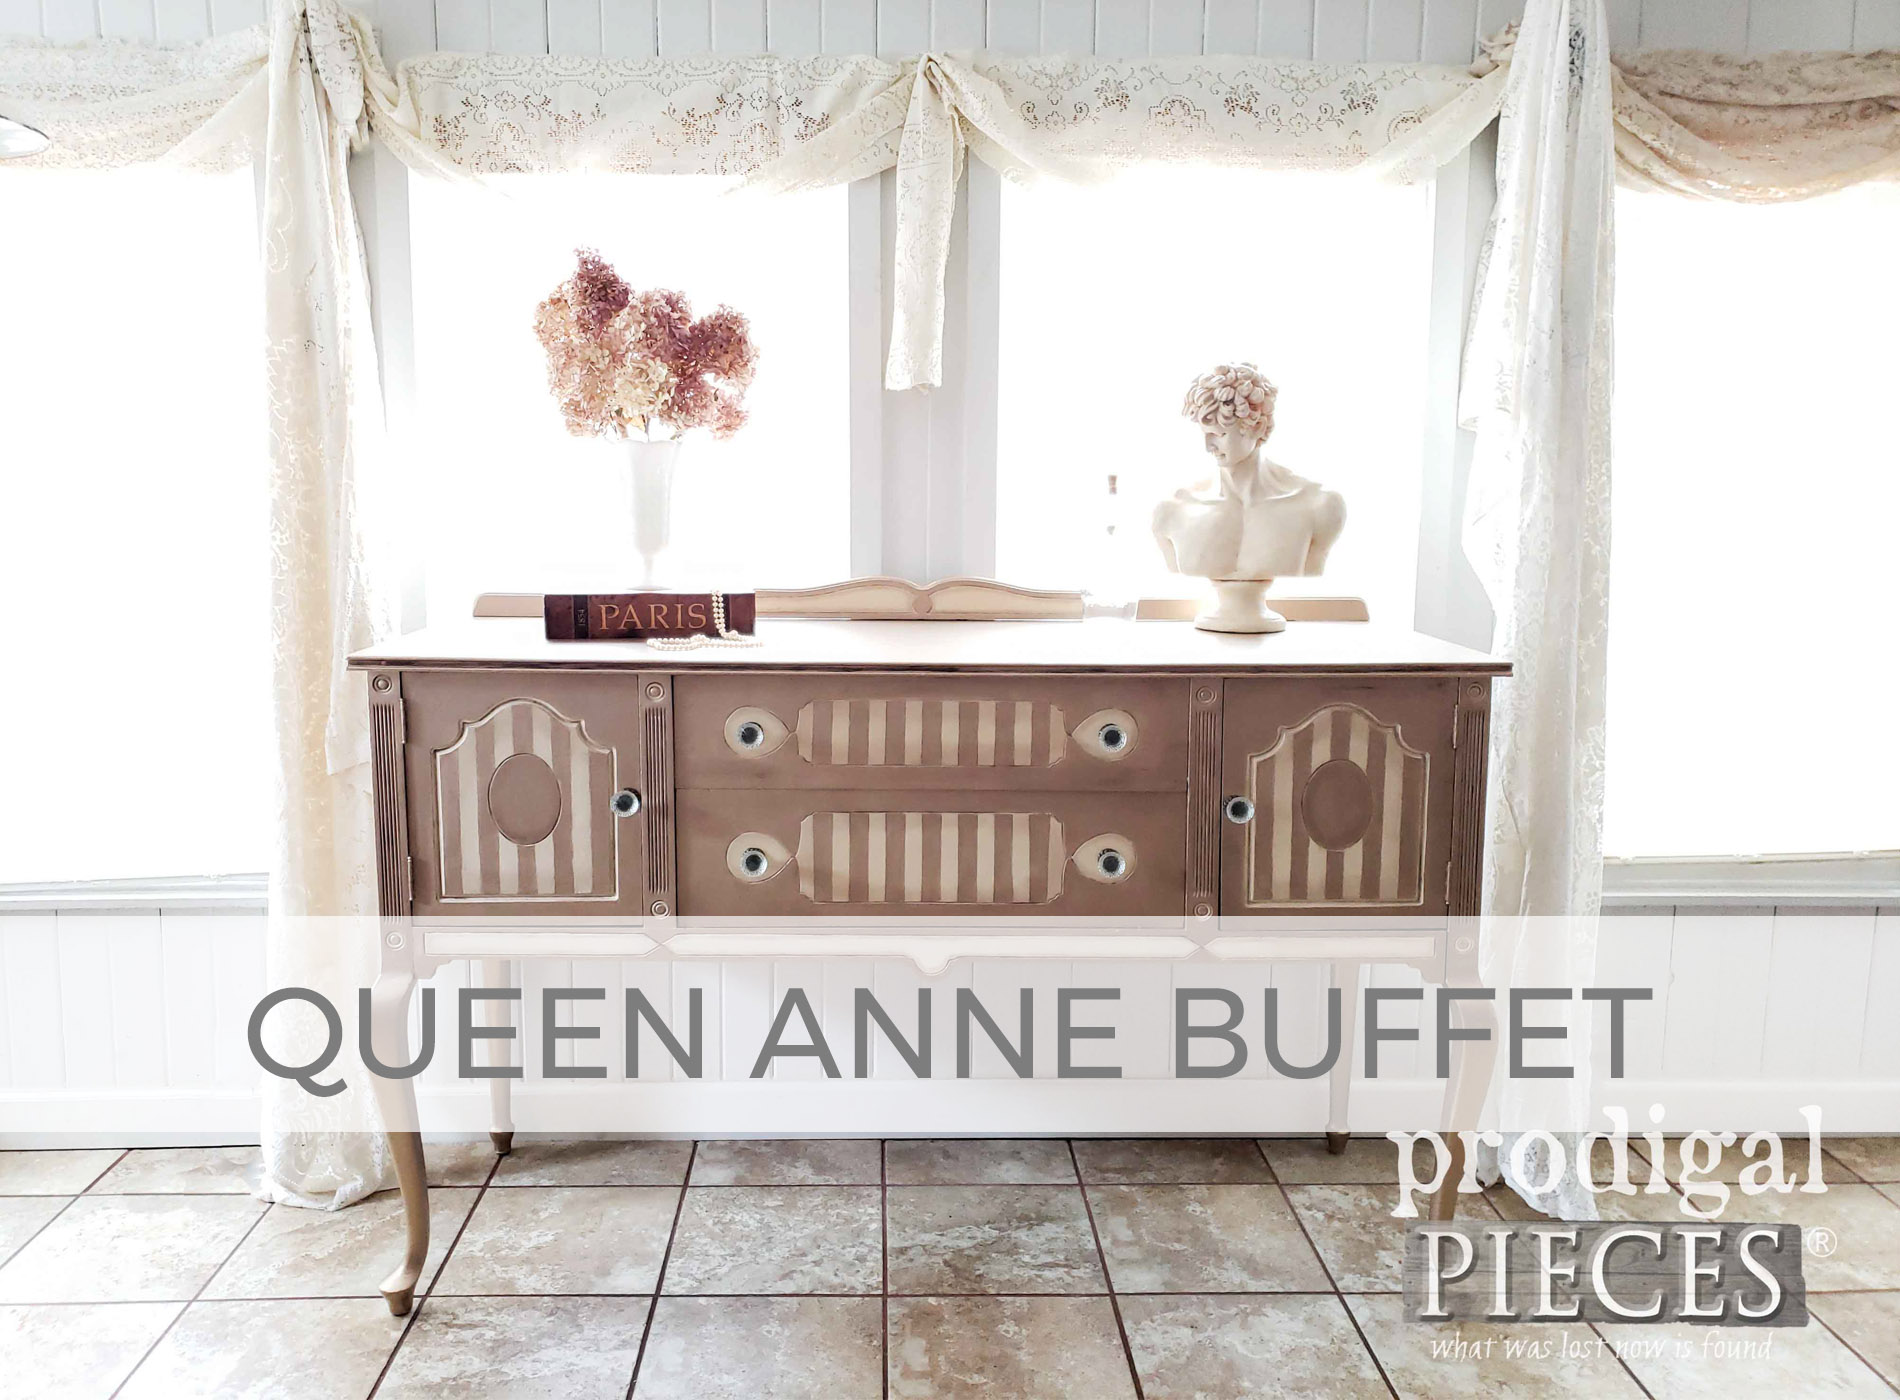 Queen Anne Buffet by Larissa of Prodigal Pieces | prodigalpieces.com